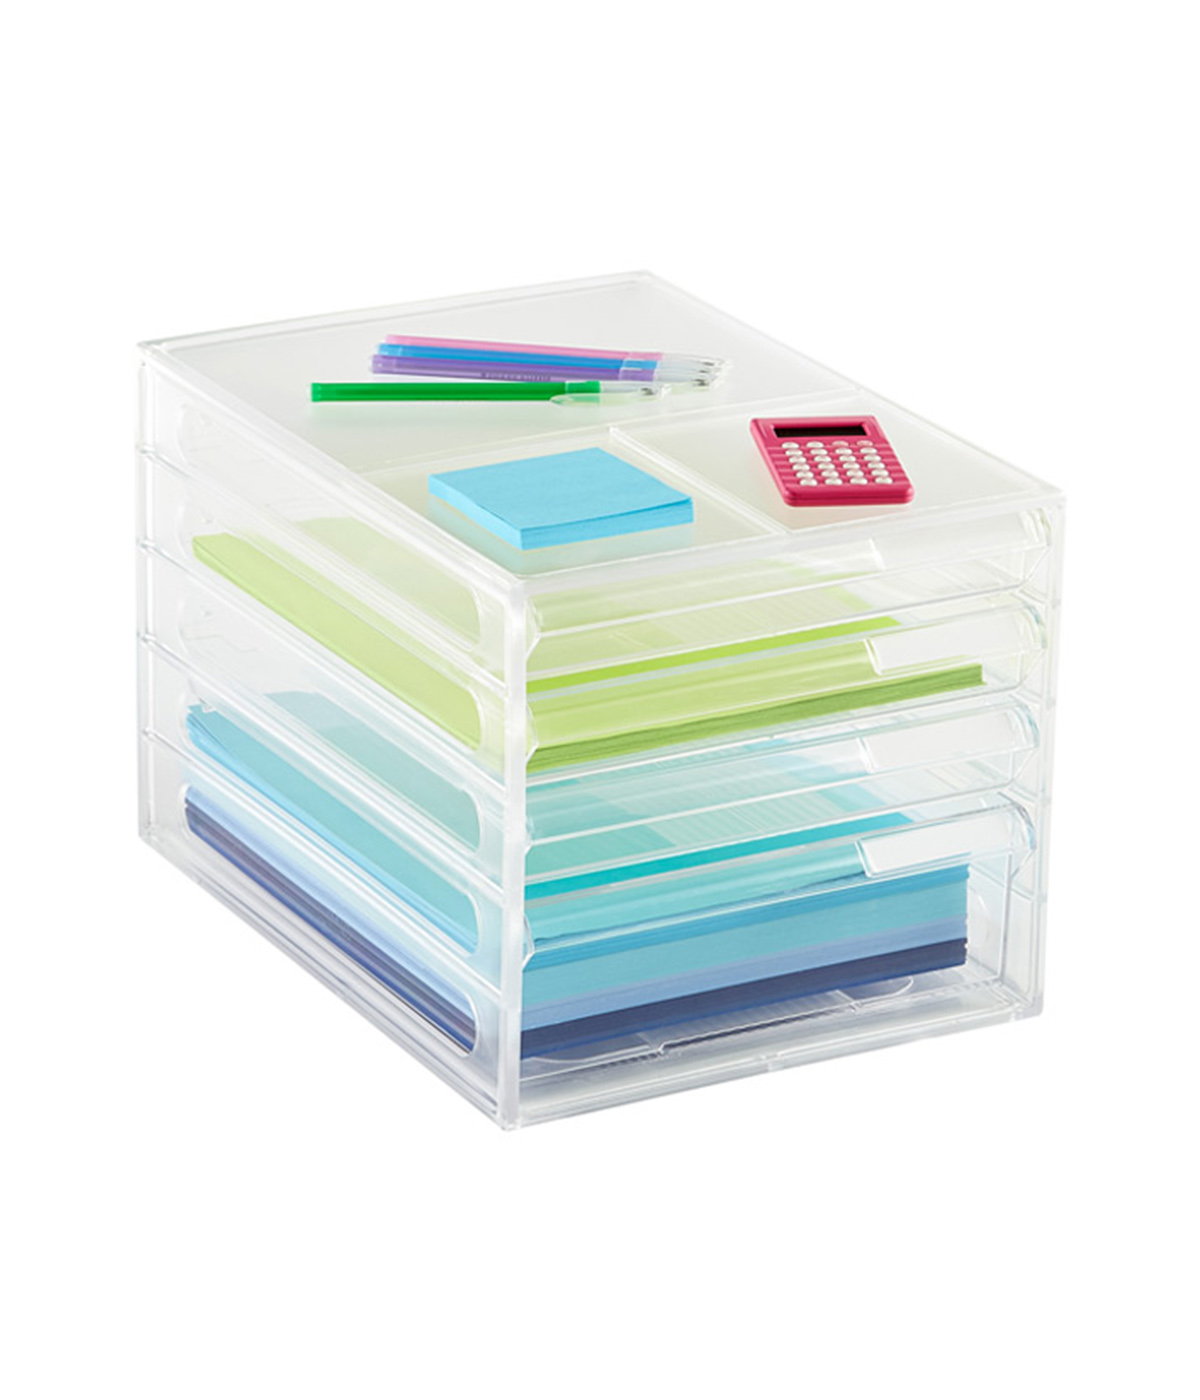 Best Desk Organizer for Papers, white stackable paper file